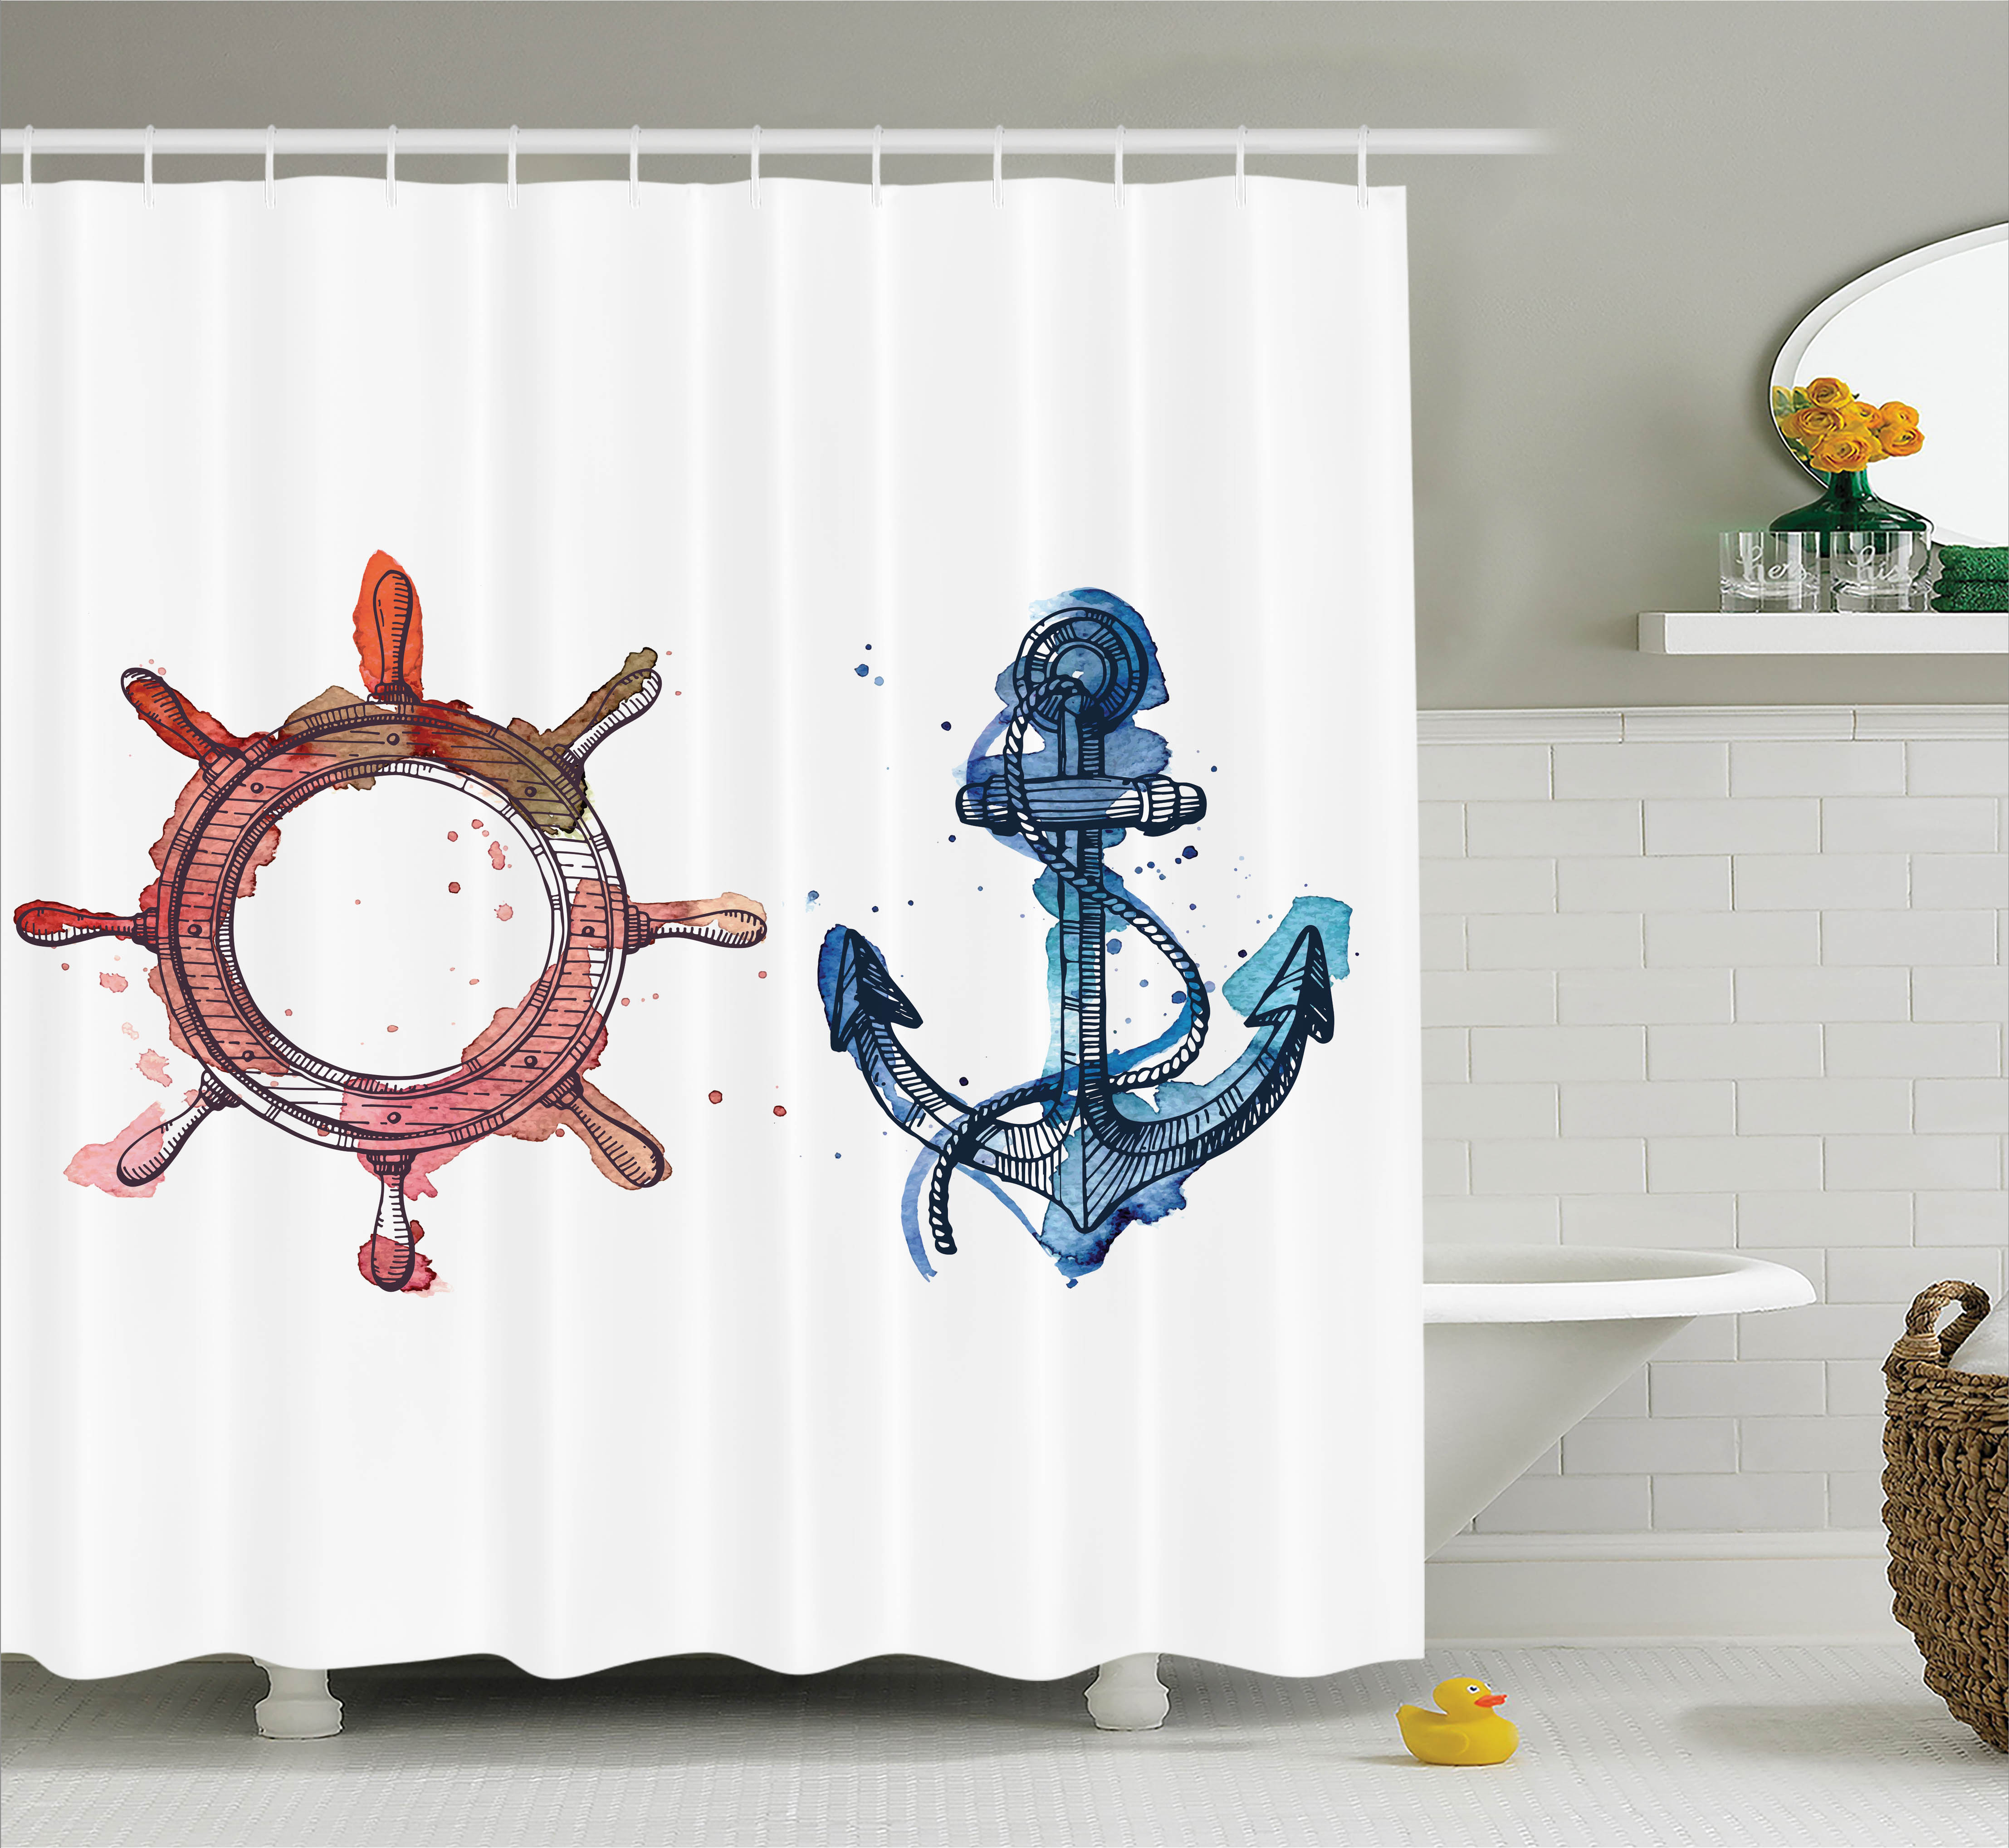 Nautical Decor Shower Curtain, Illustration Anchor and Steering Wheel with Watercolors Ink Brush Effects, Fabric Bathroom Set with Hooks, 69W X 75L Inches Long, Pink Blue, by Ambesonne